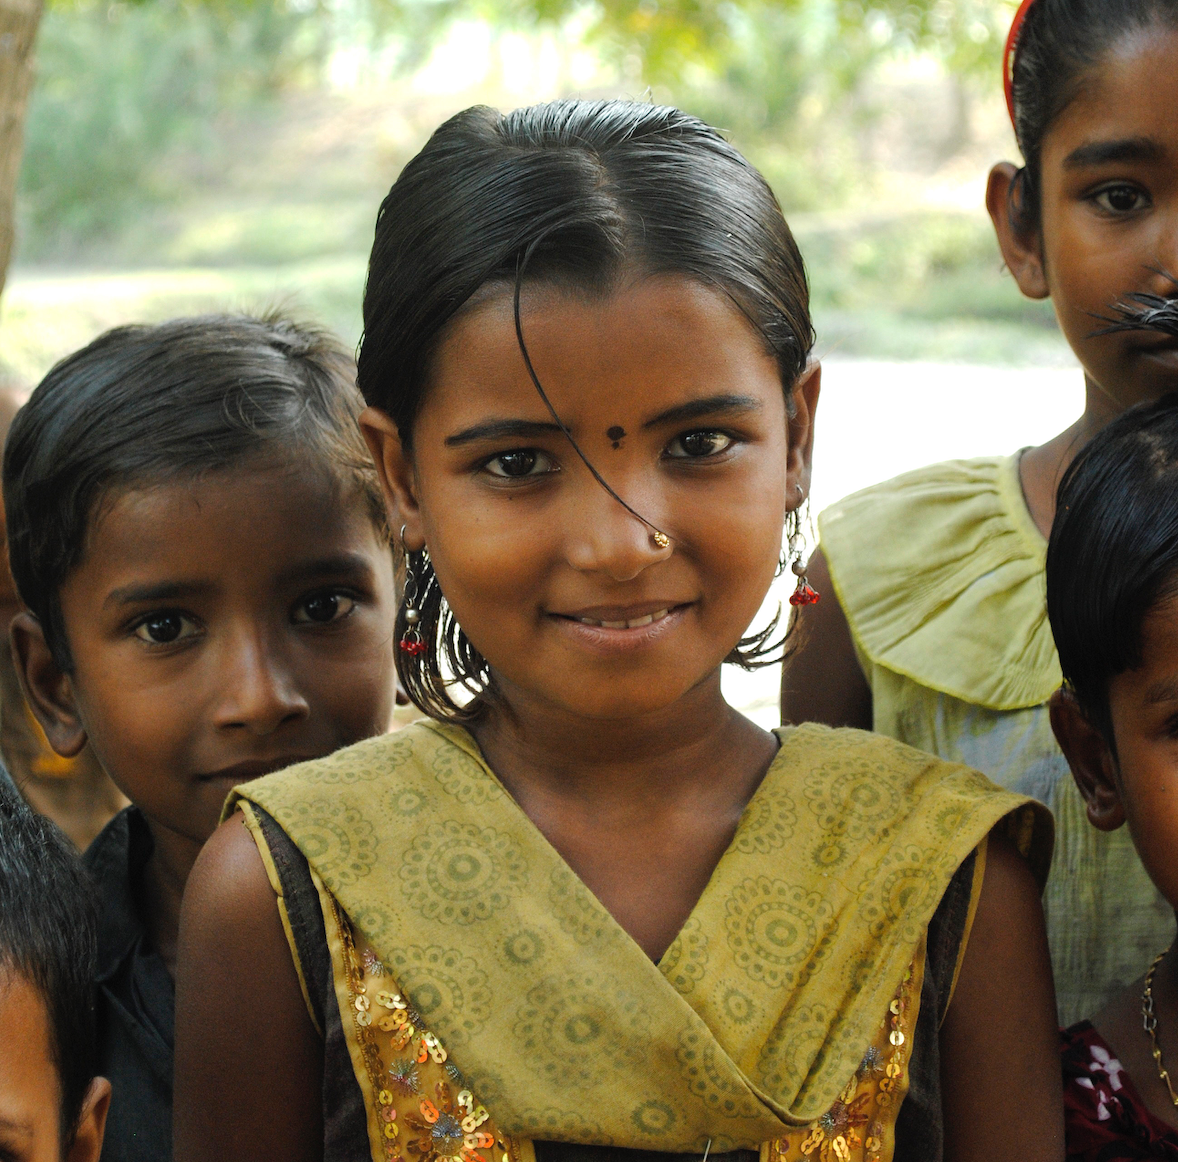 Silk Wolfe donates $1 from every sale to help prevent child marriage